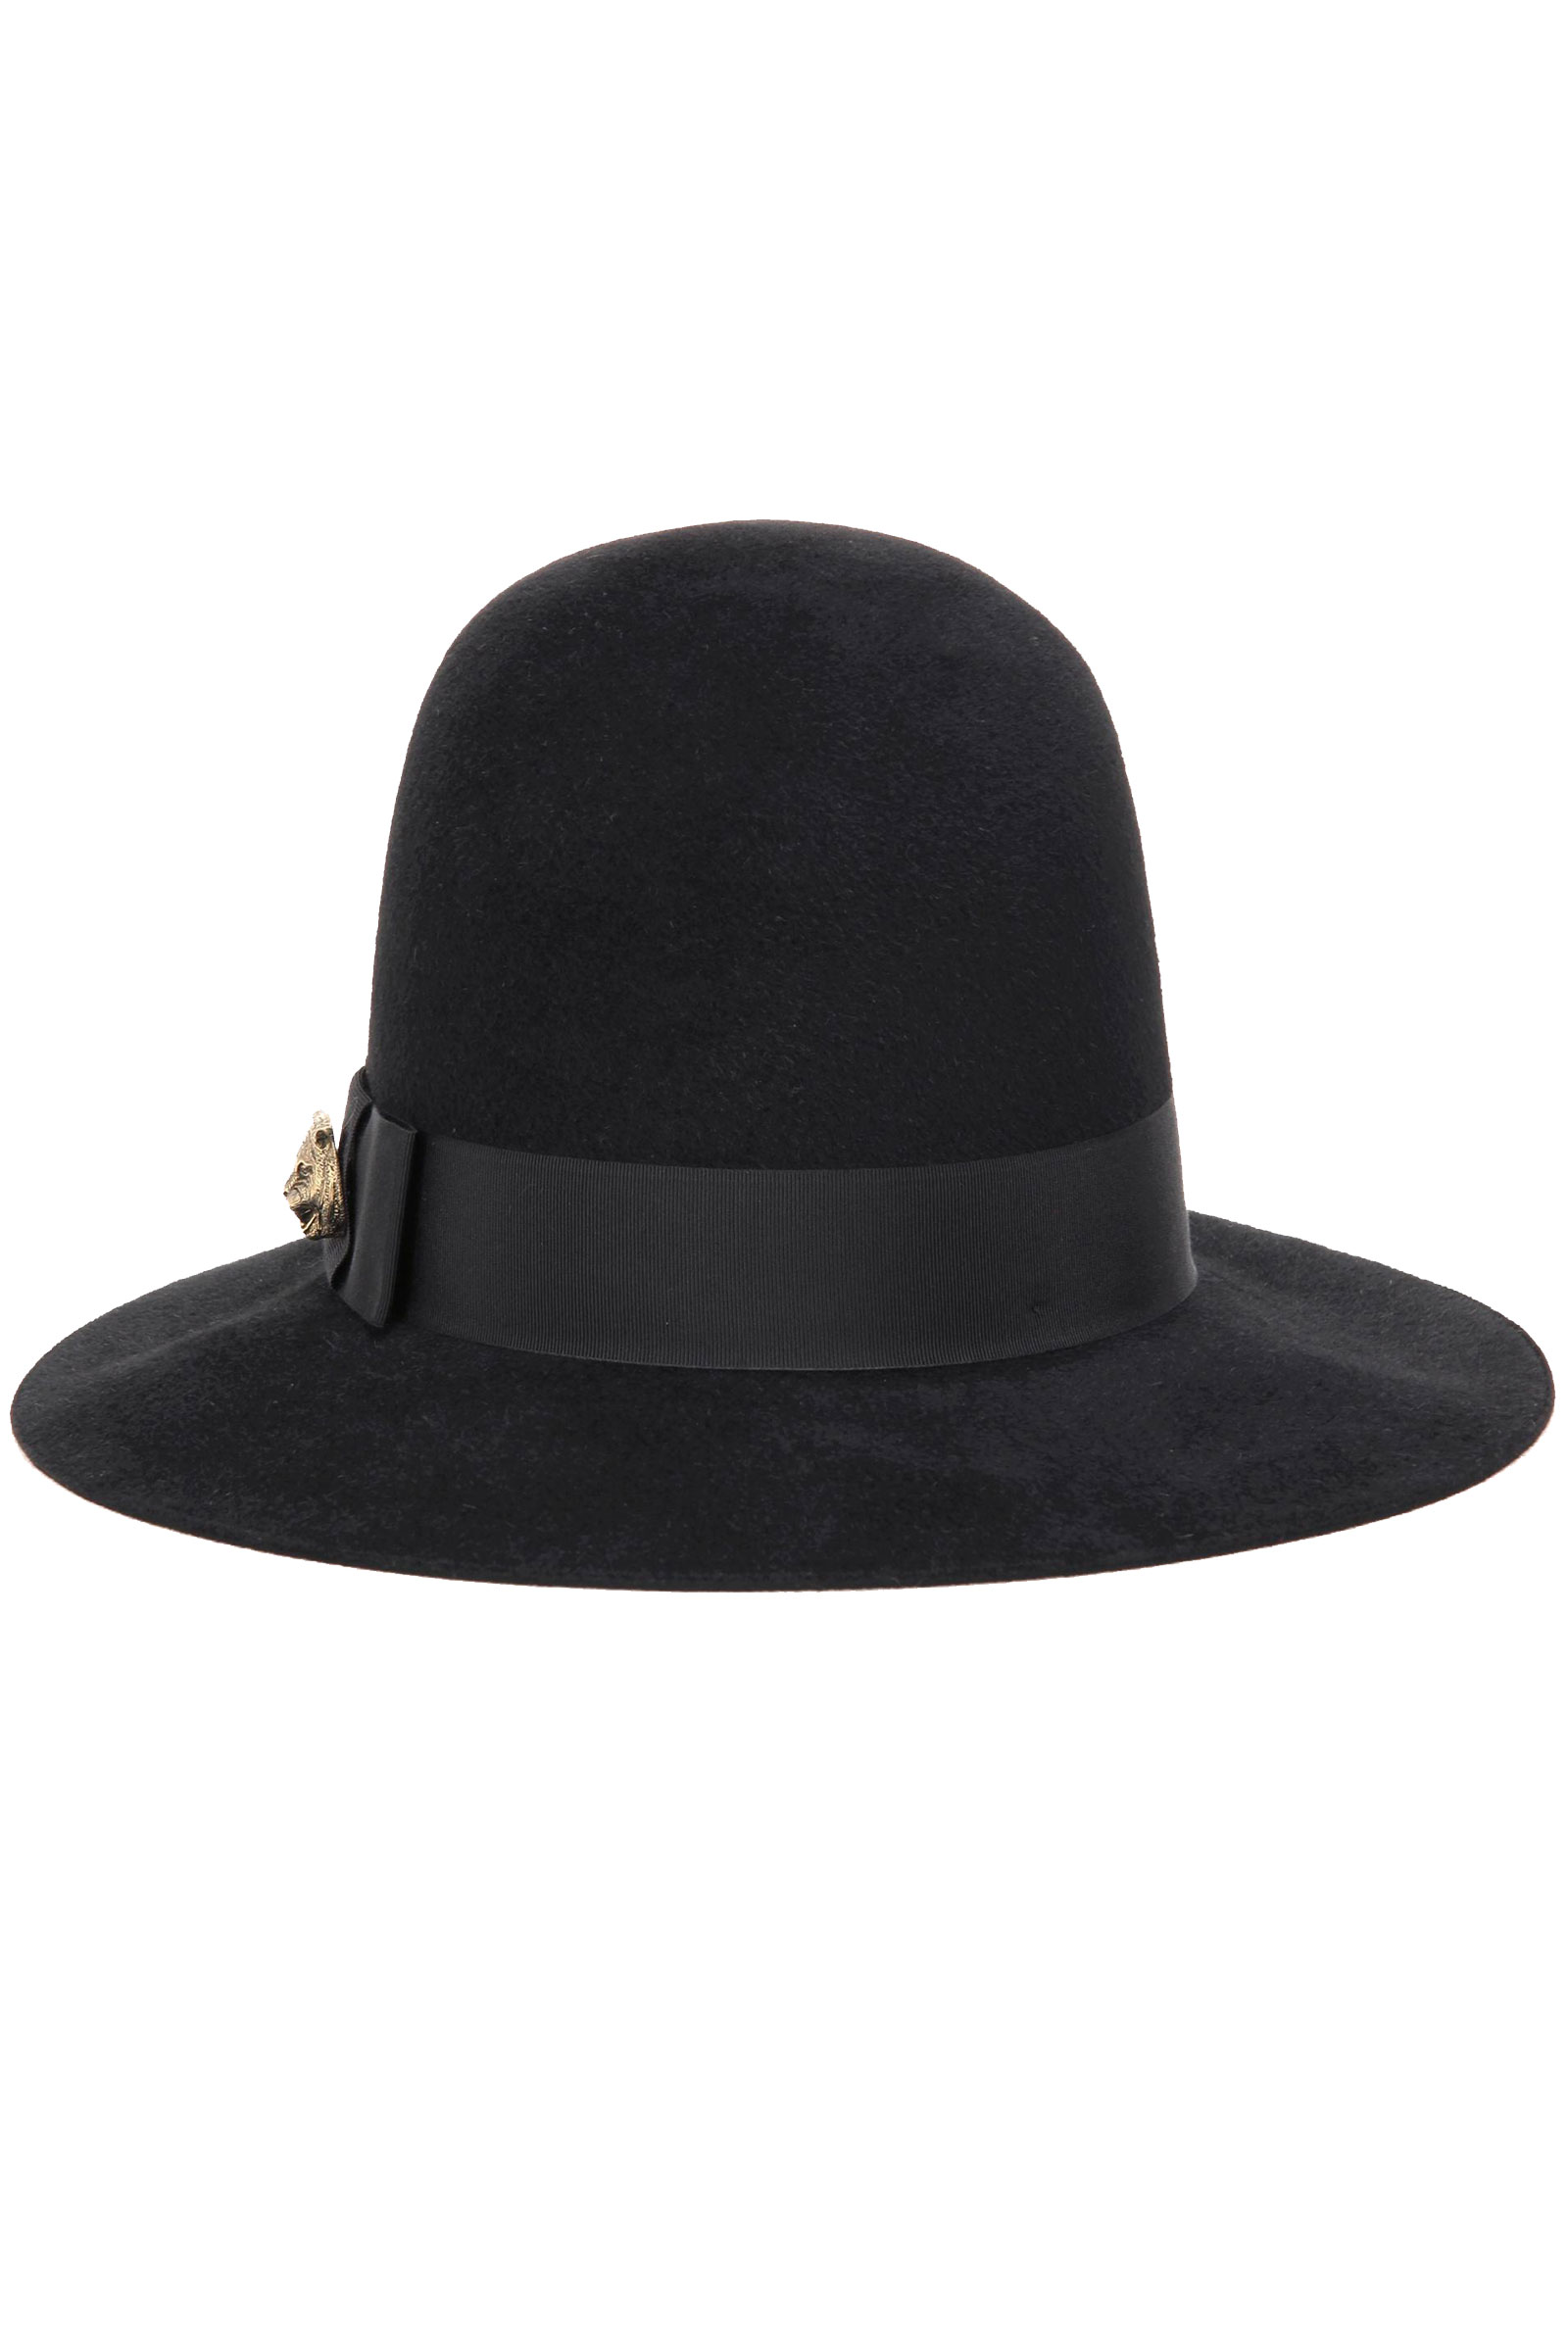 484349f796e707 Buy Gucci Embellished Rabbit-Felt Black Hat Online